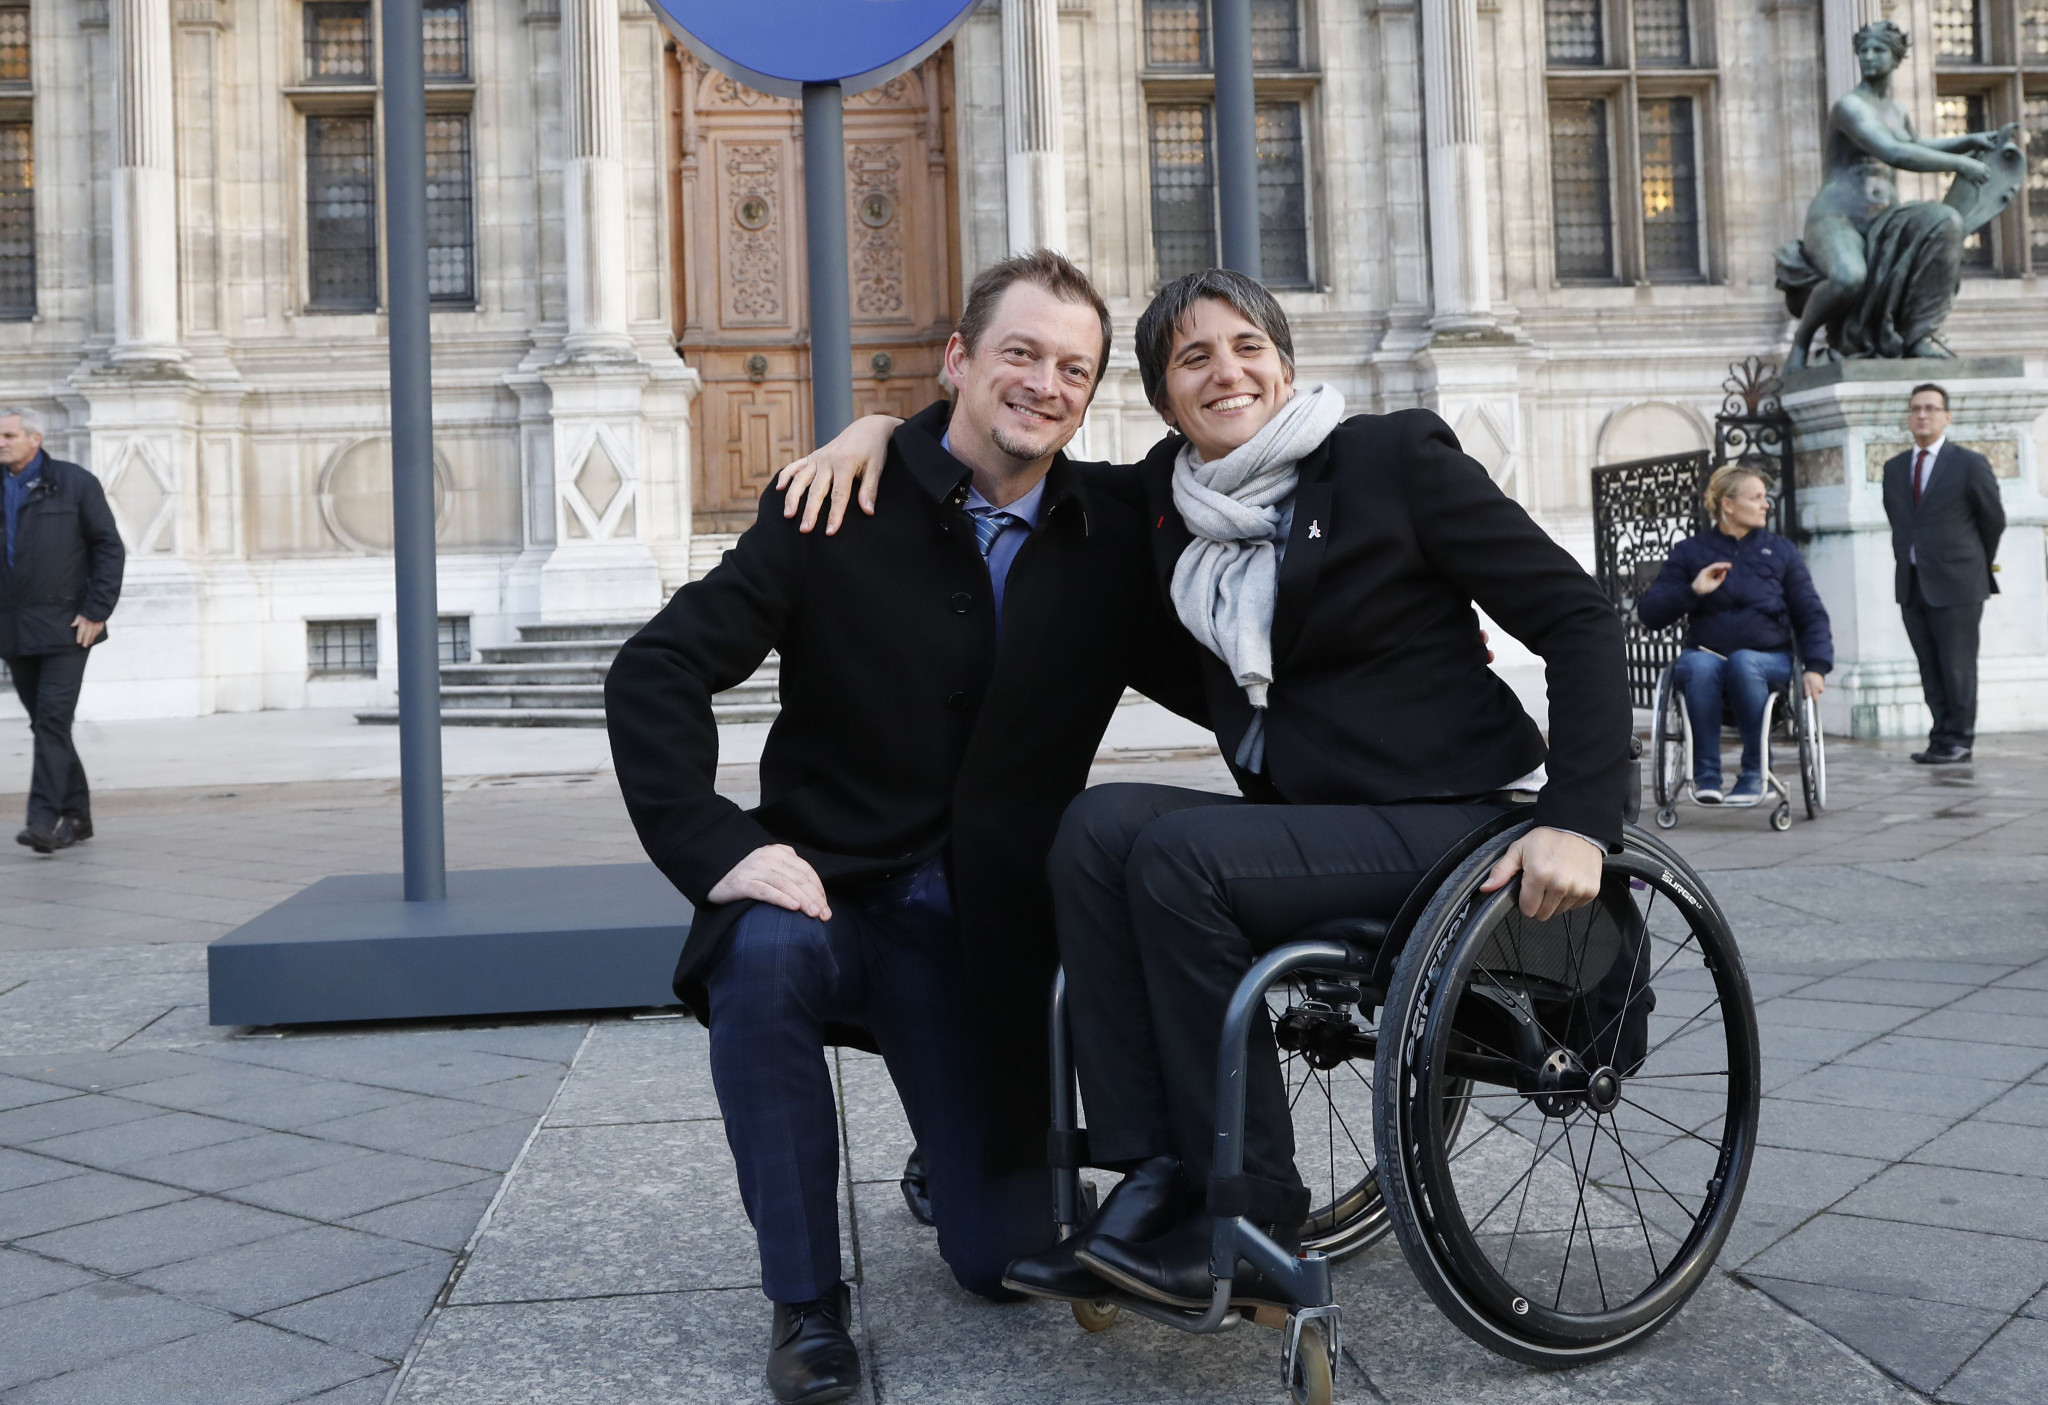 Emmanuelle Assmann, right, with IPC President Andrew Parsons ©Getty Images